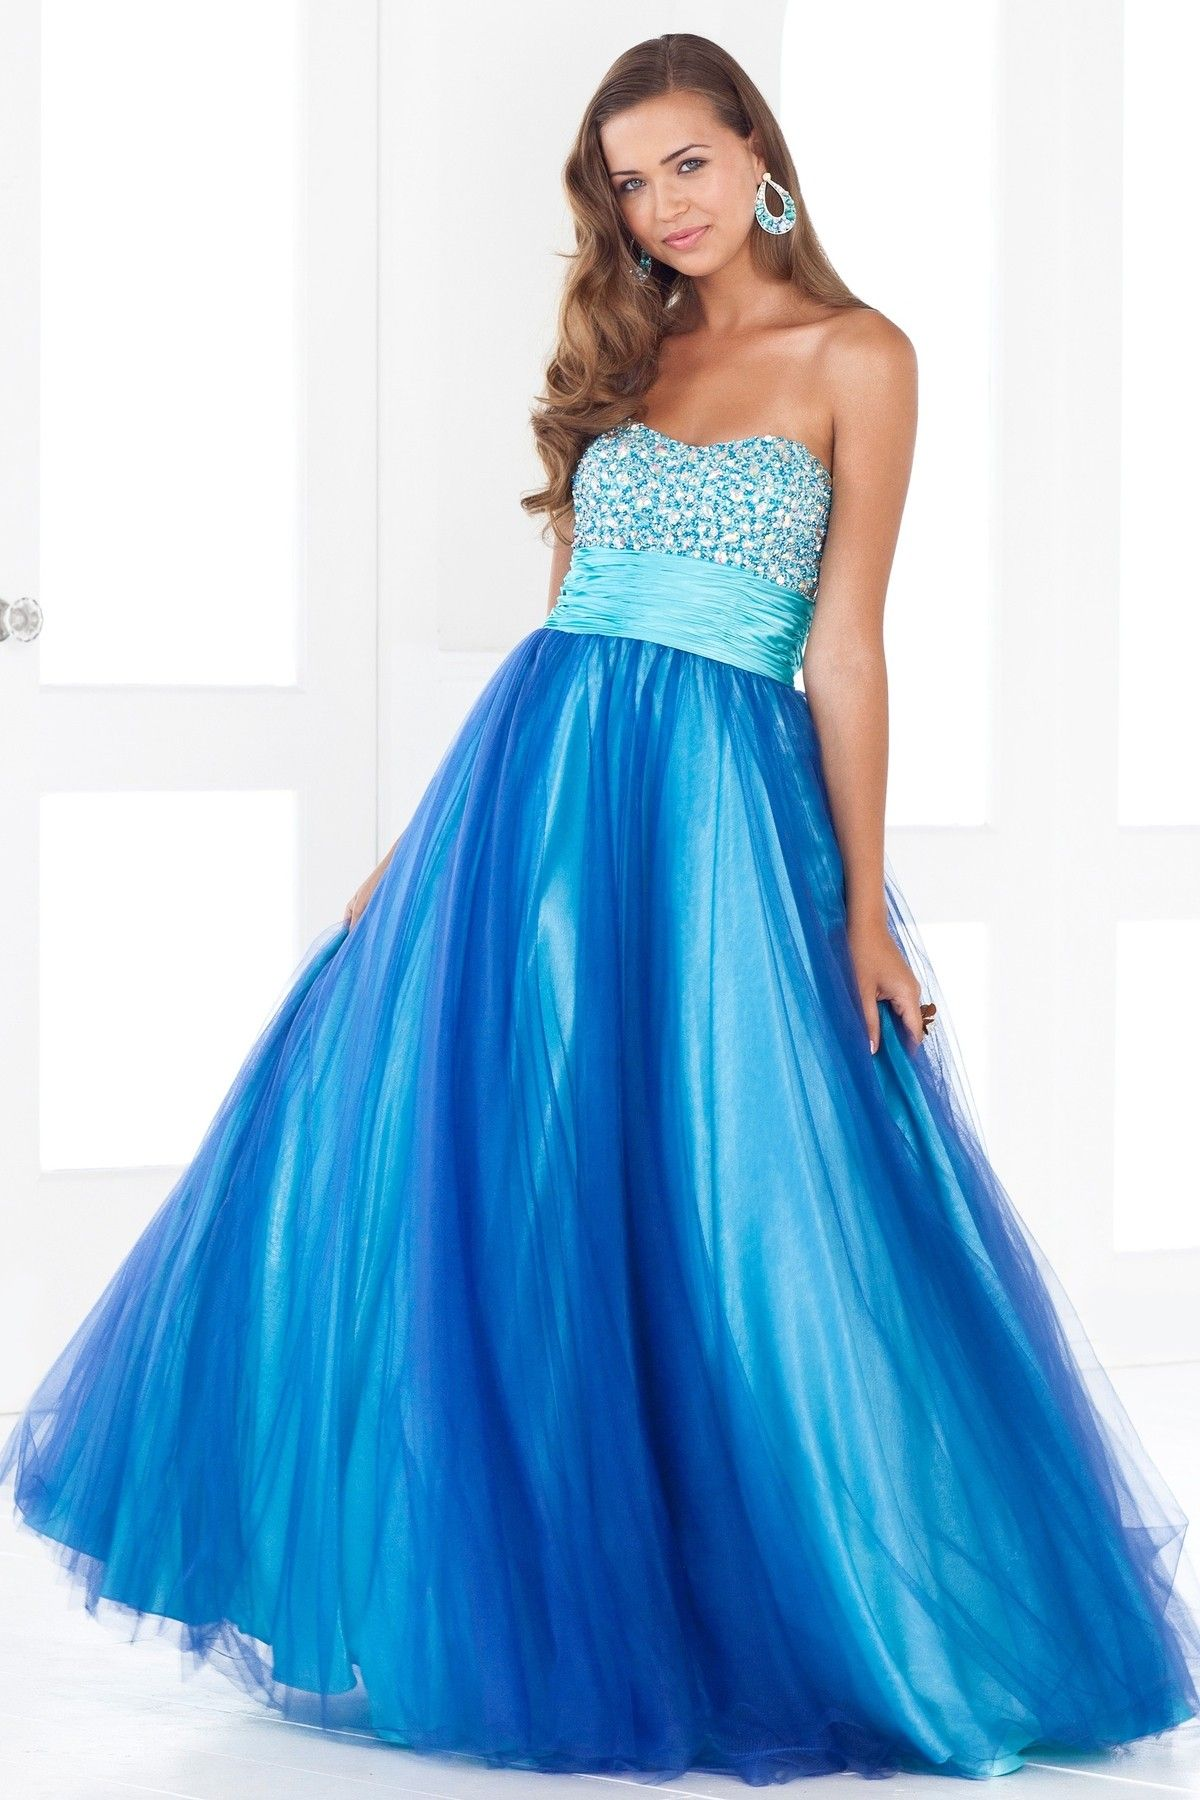 Sequin/Tulle Beaded Sweetheart Ball Gown Prom Dress | Prom Dresses ...